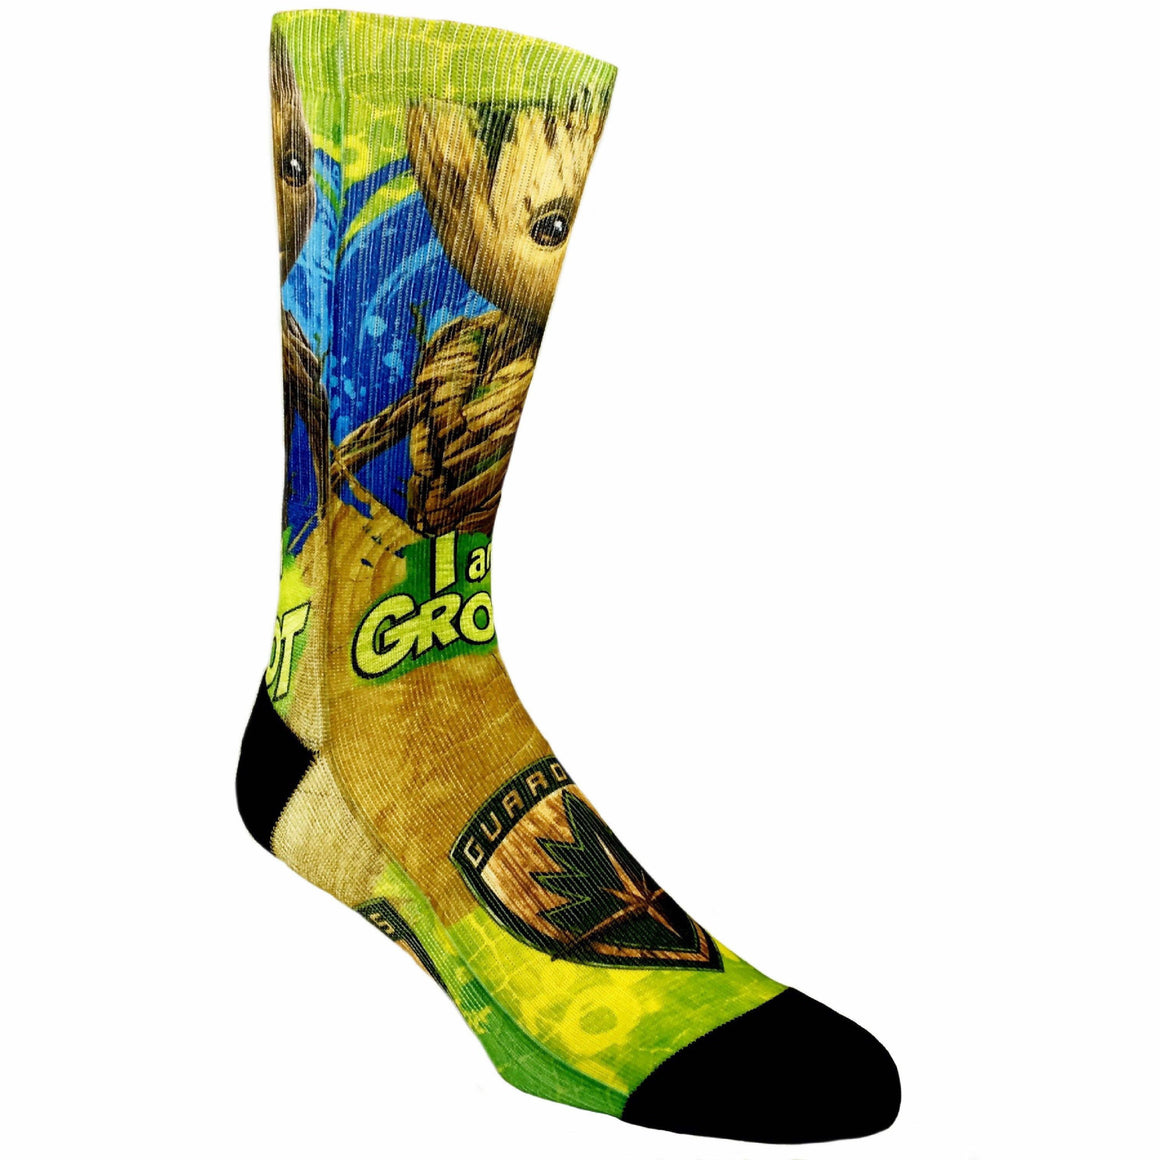 Marvel Guardians of the Galaxy I Am Groot Printed Superhero Socks - The Sock Spot